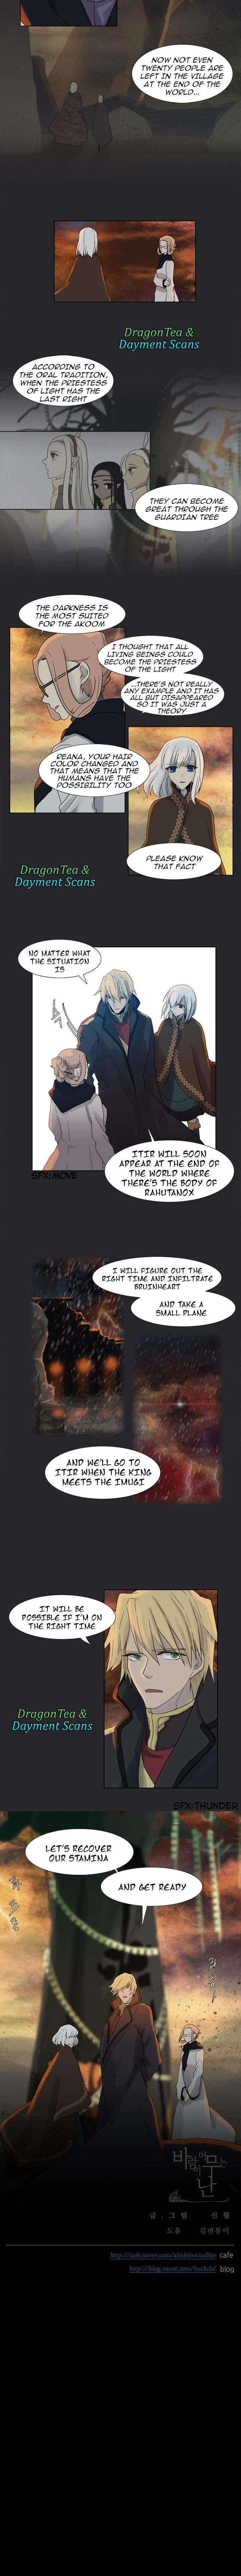 Abide In The Wind Chapter 168 page 7 - Mangakakalots.com